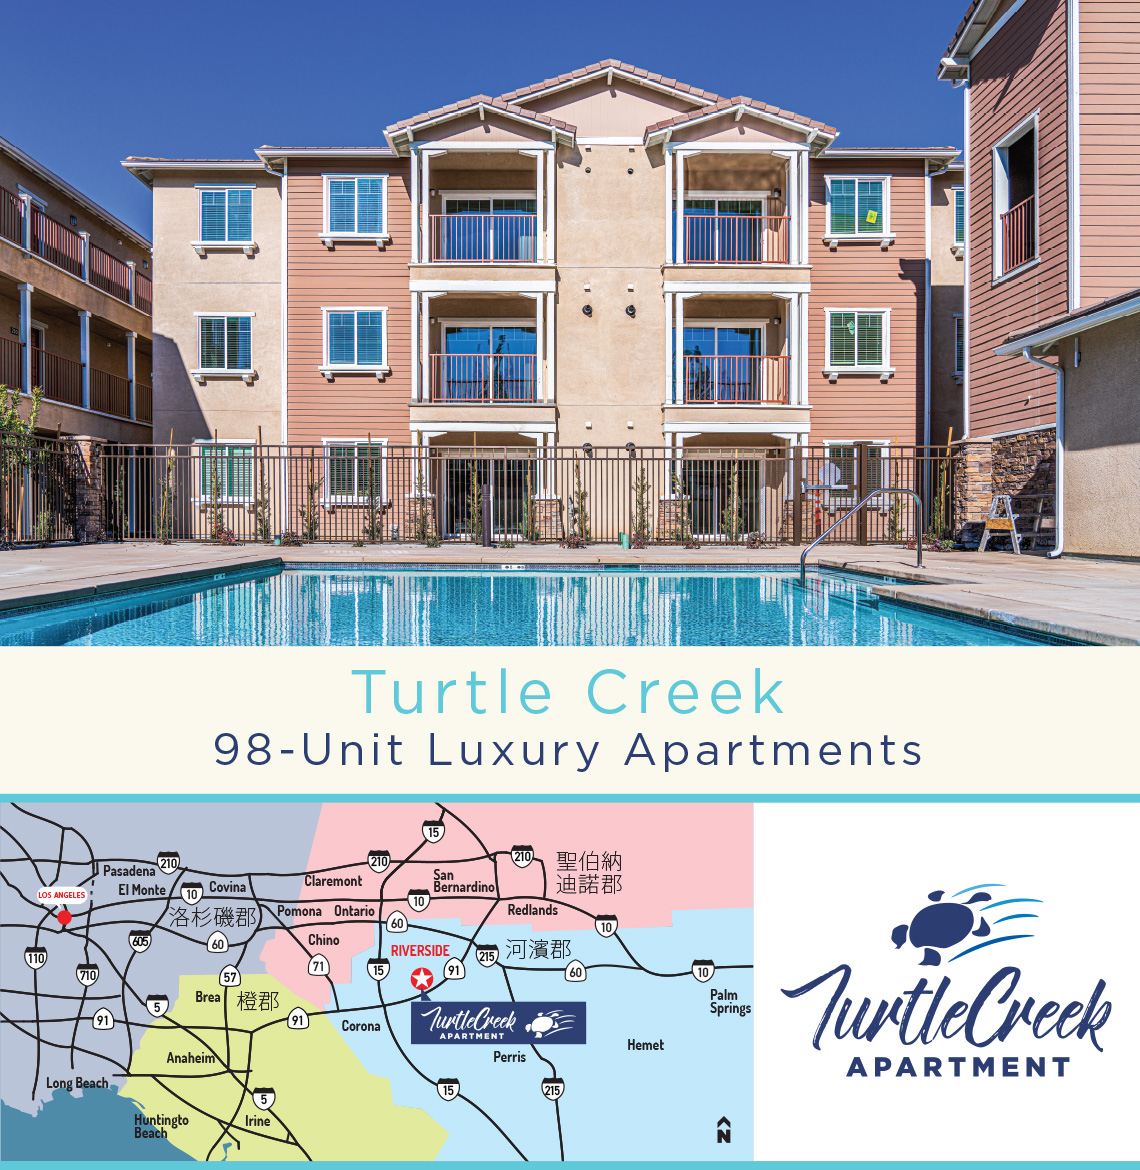 TURTLE CREEK LUXURY APARTMENTS